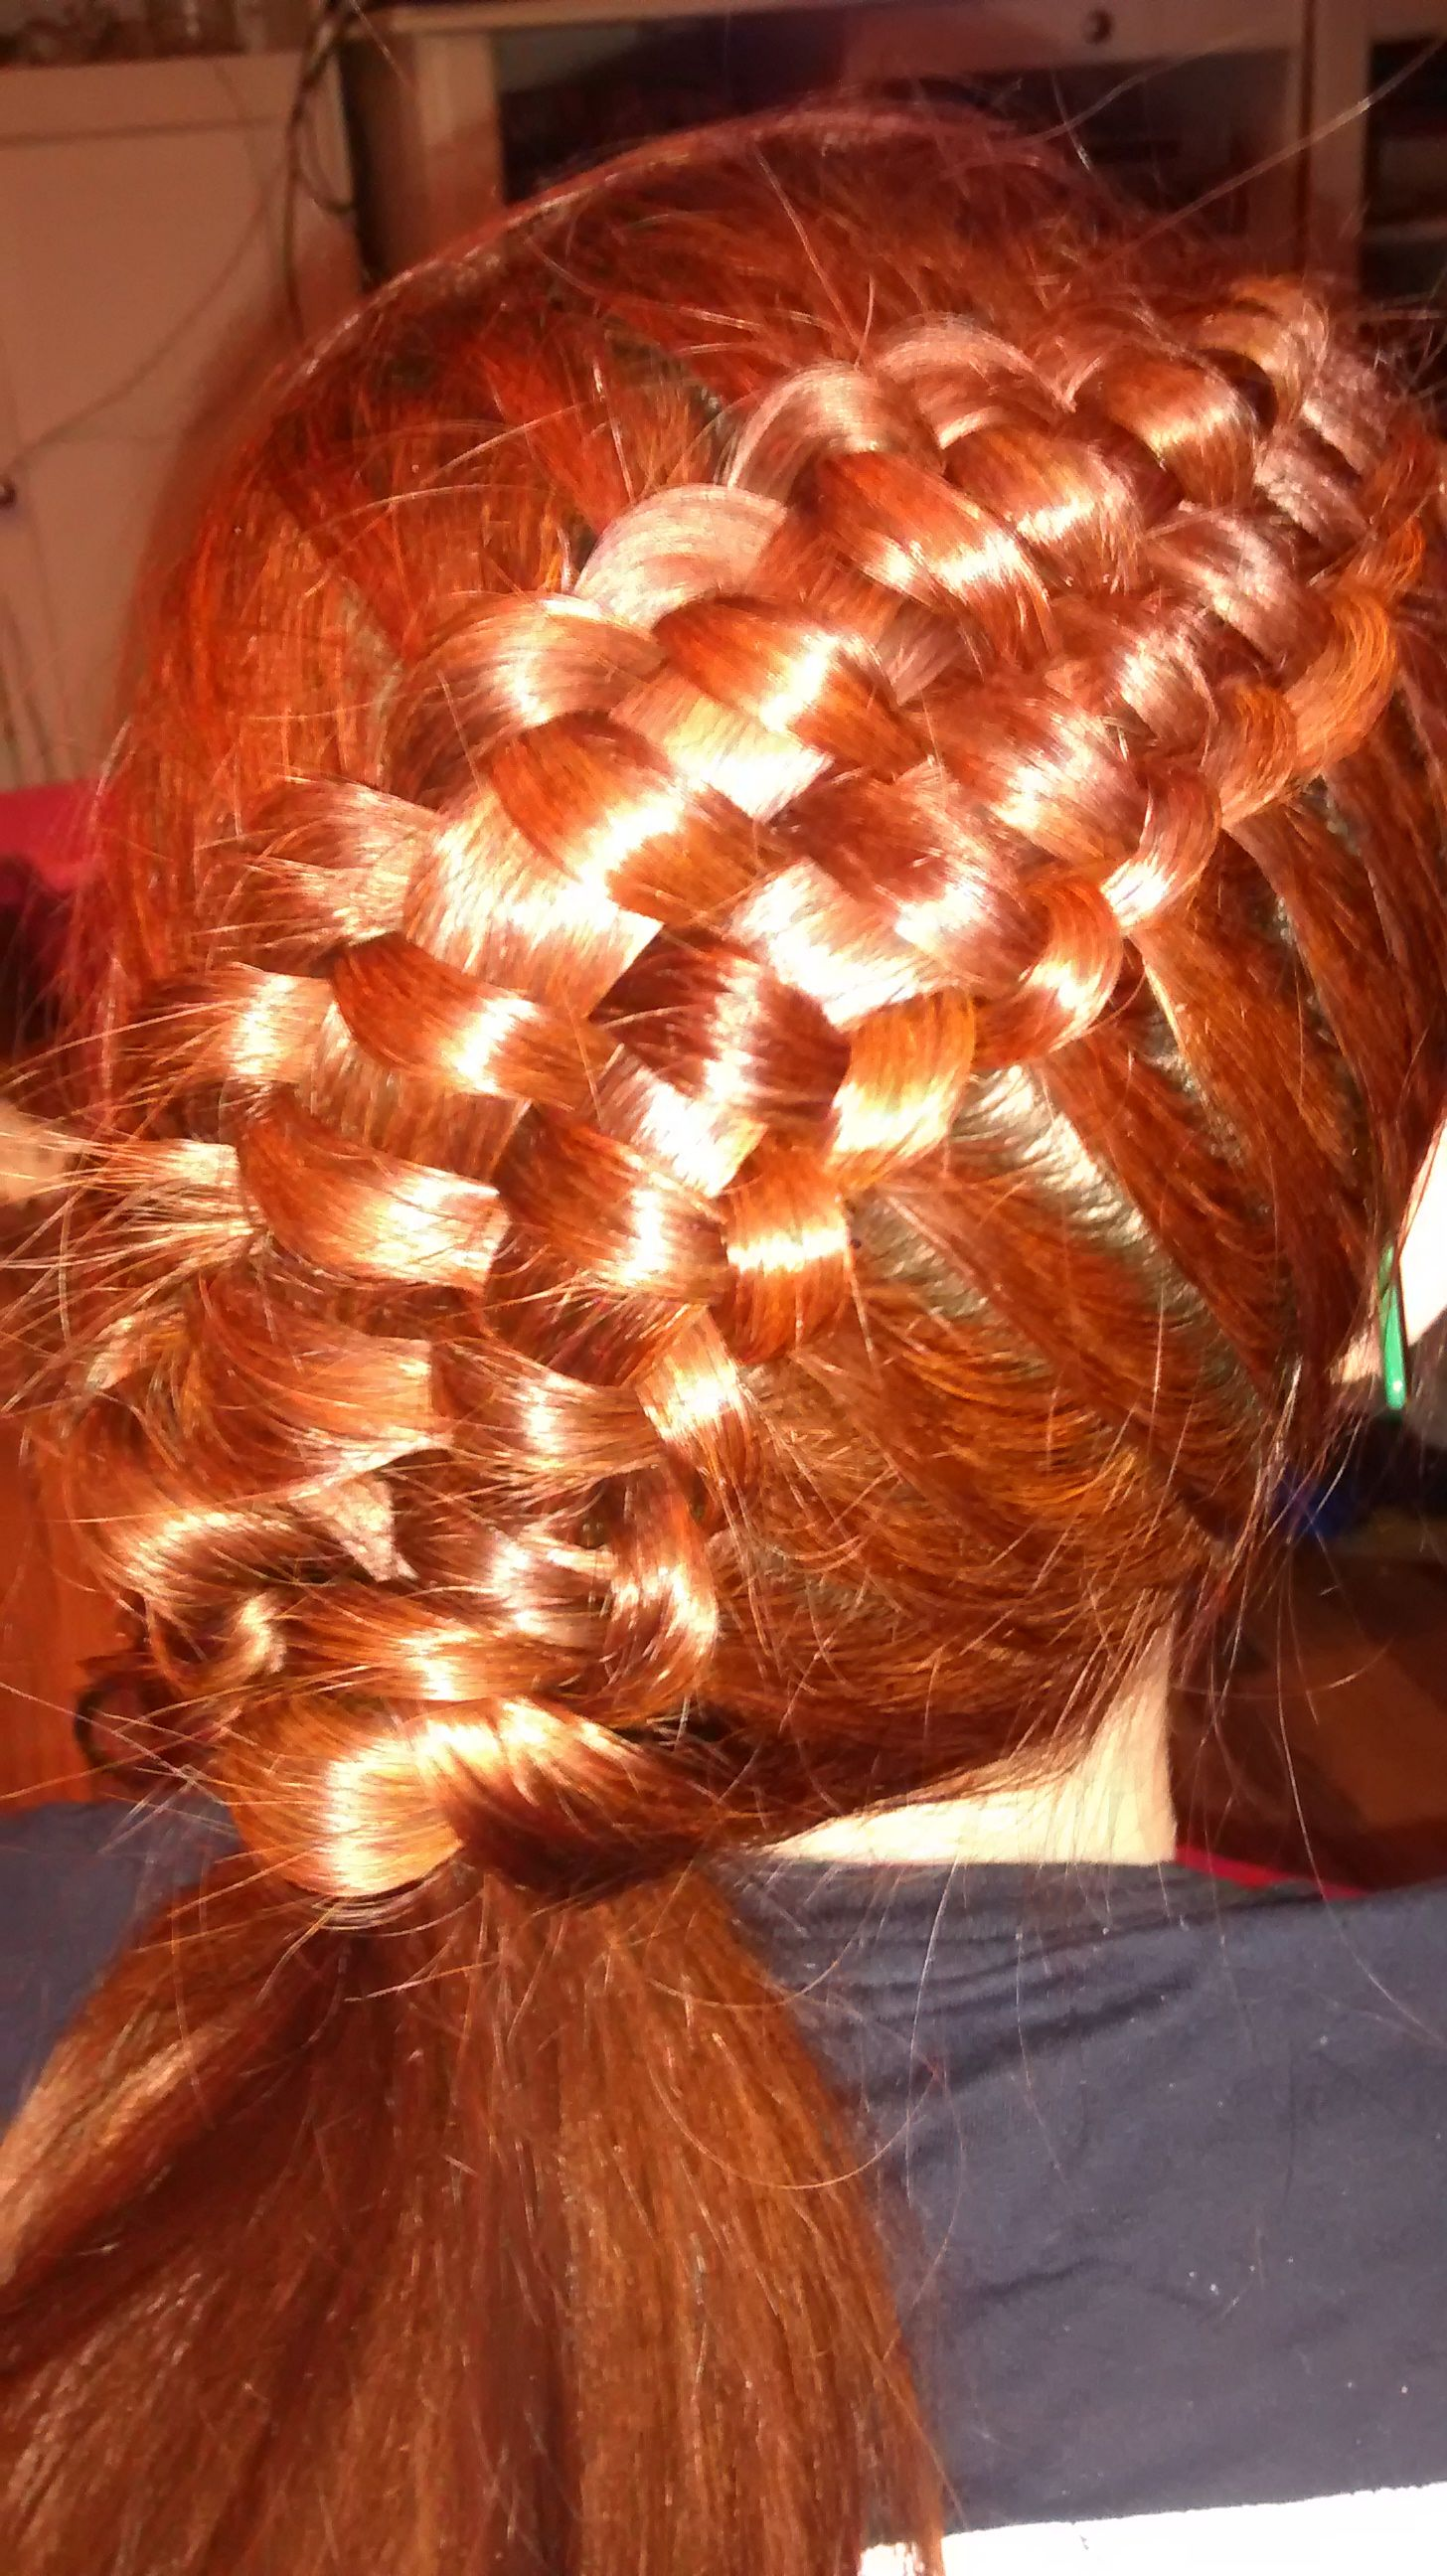 And finally managed to do the Zipper braid from Cute Girls